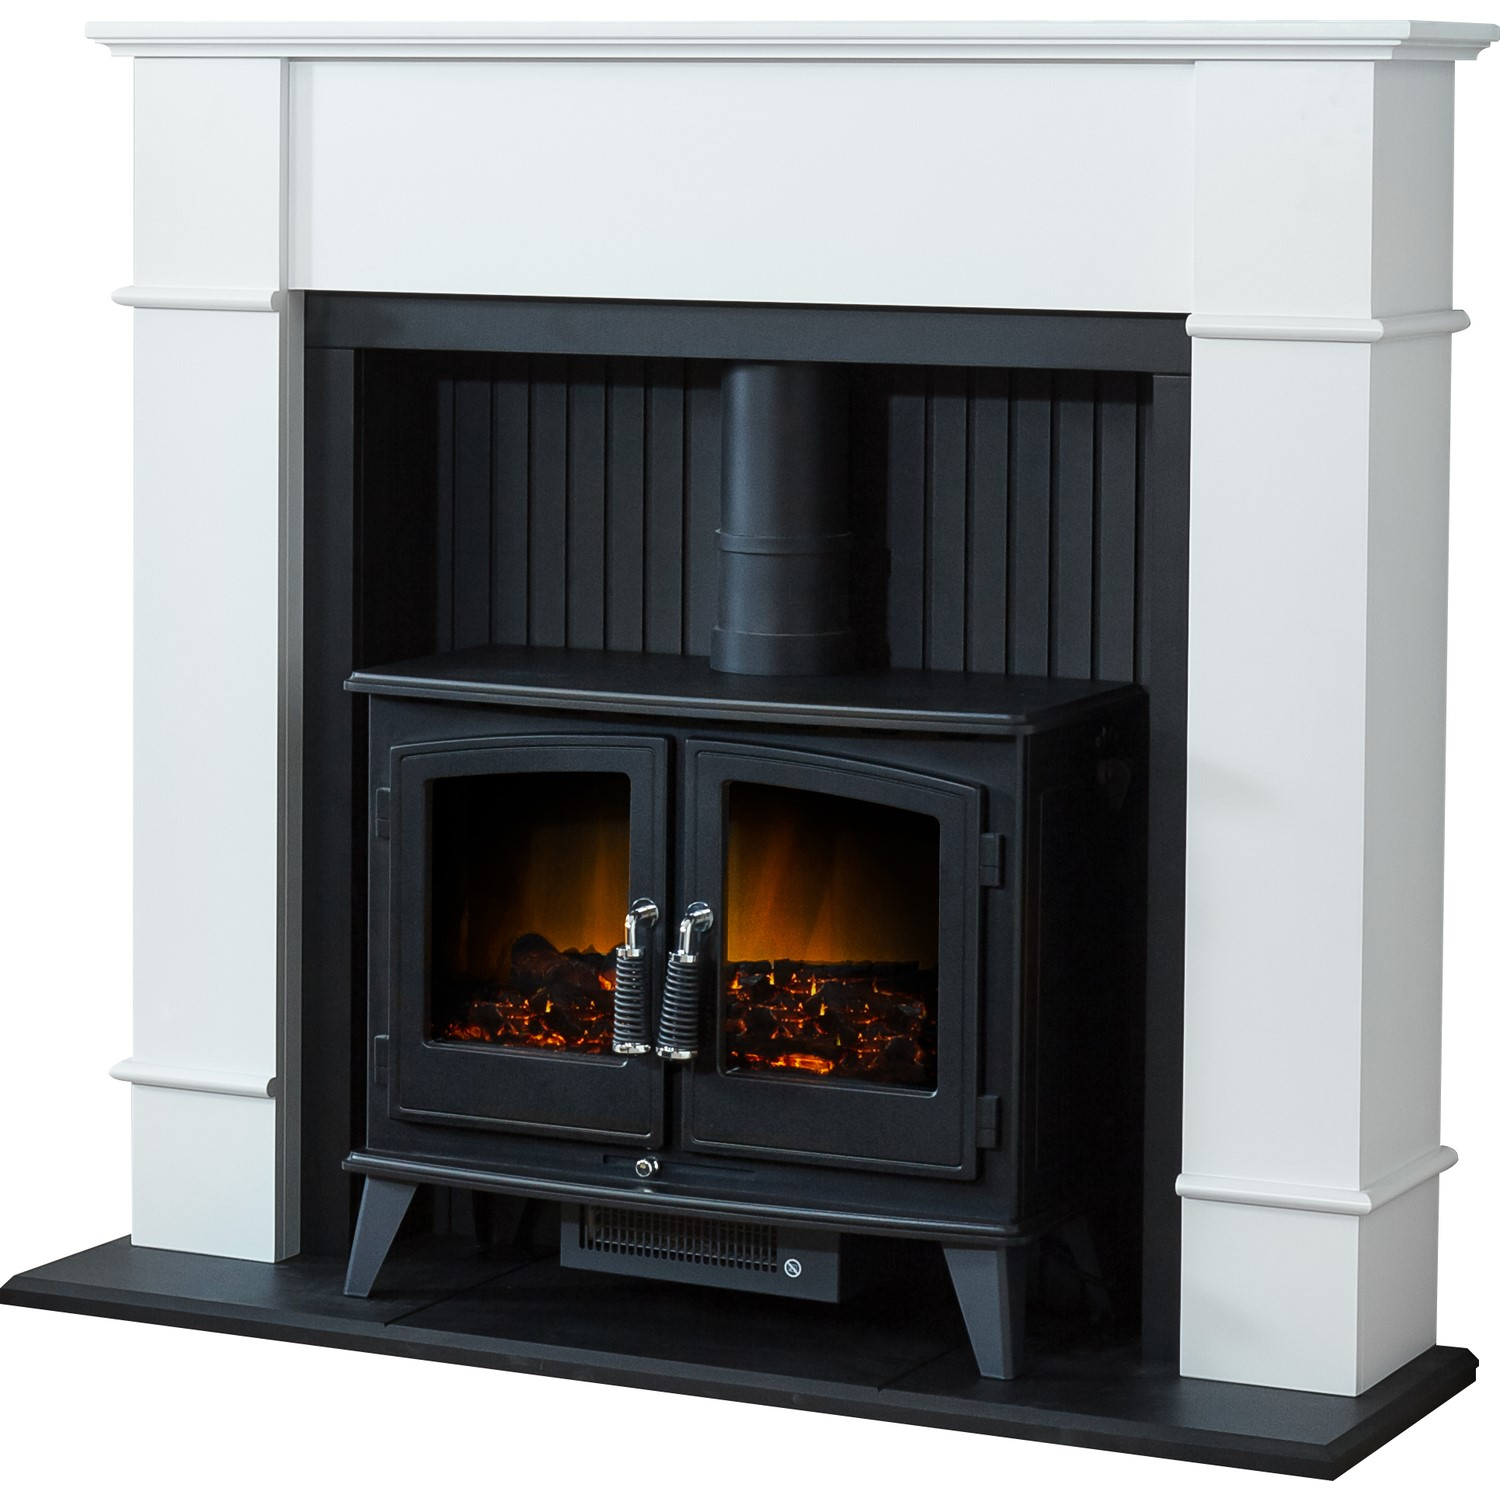 Adam Oxford White Fireplace Suite With Black Double Door Electric